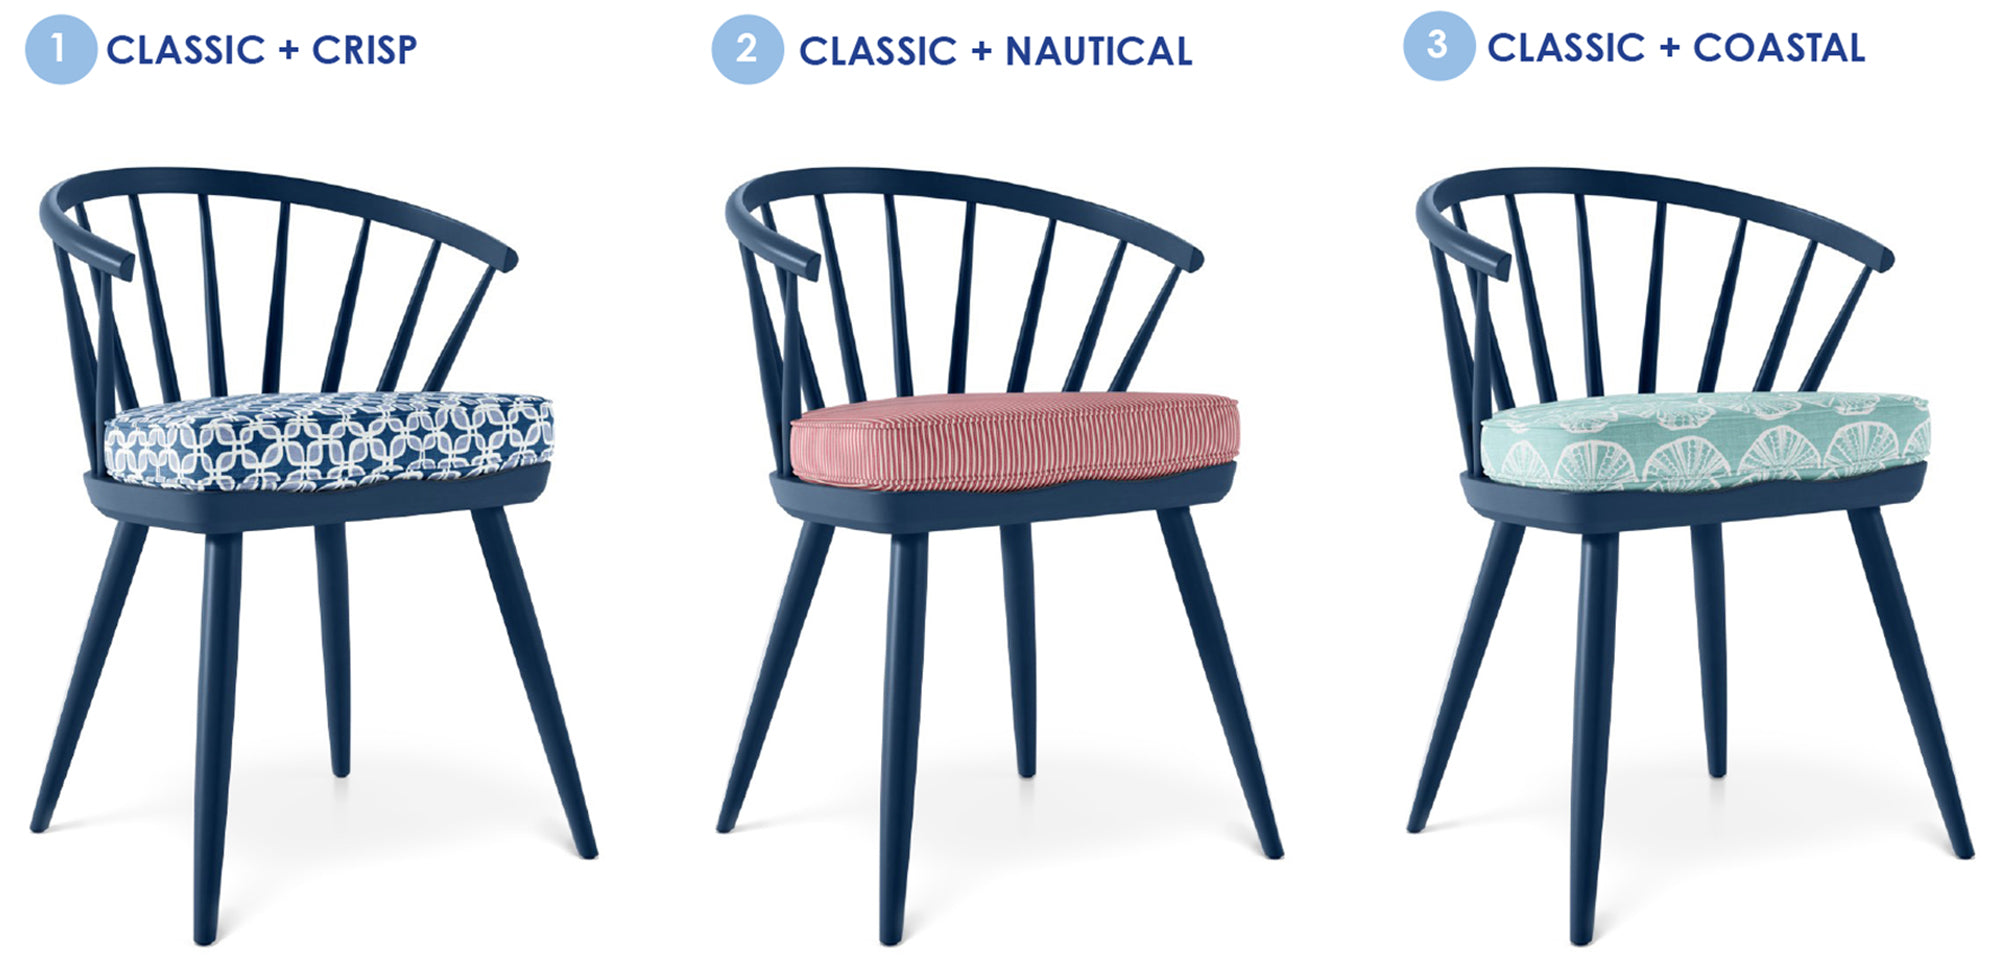 Three wood chairs painted blue with seat cushions in blue leaf print, red texture and blue-green coastal print